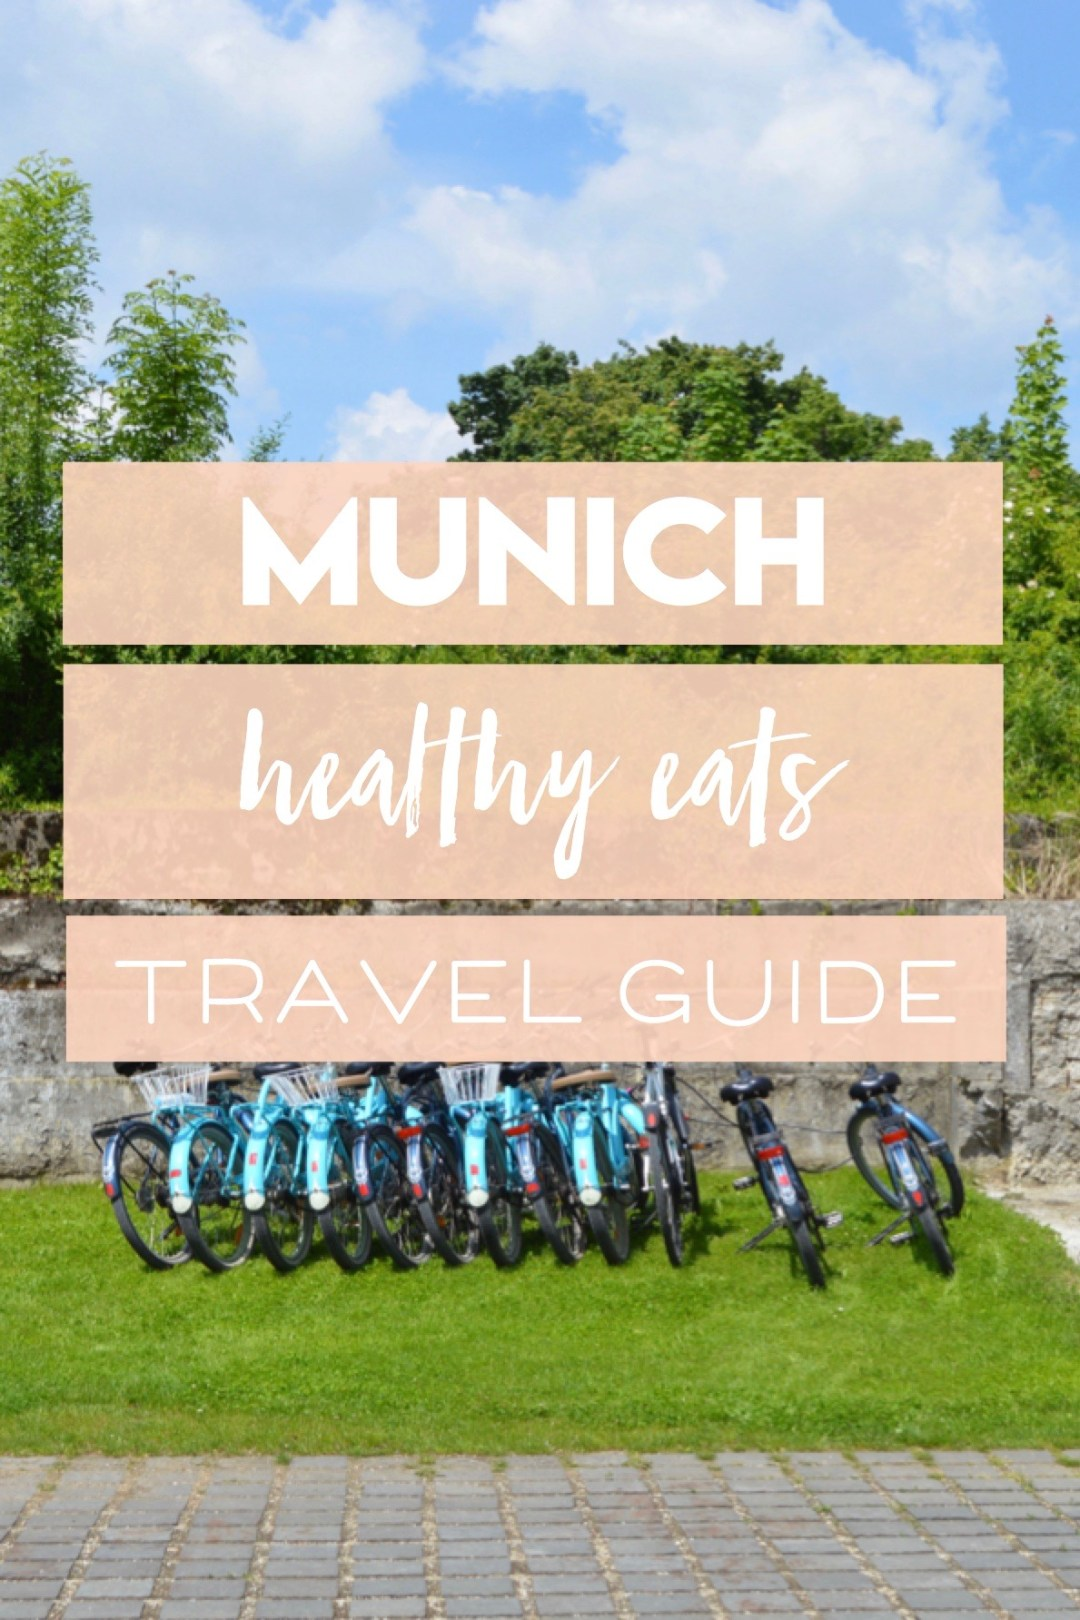 Healthy restaurant travel guide for Munich, Germany | gluten free and vegan travel guide